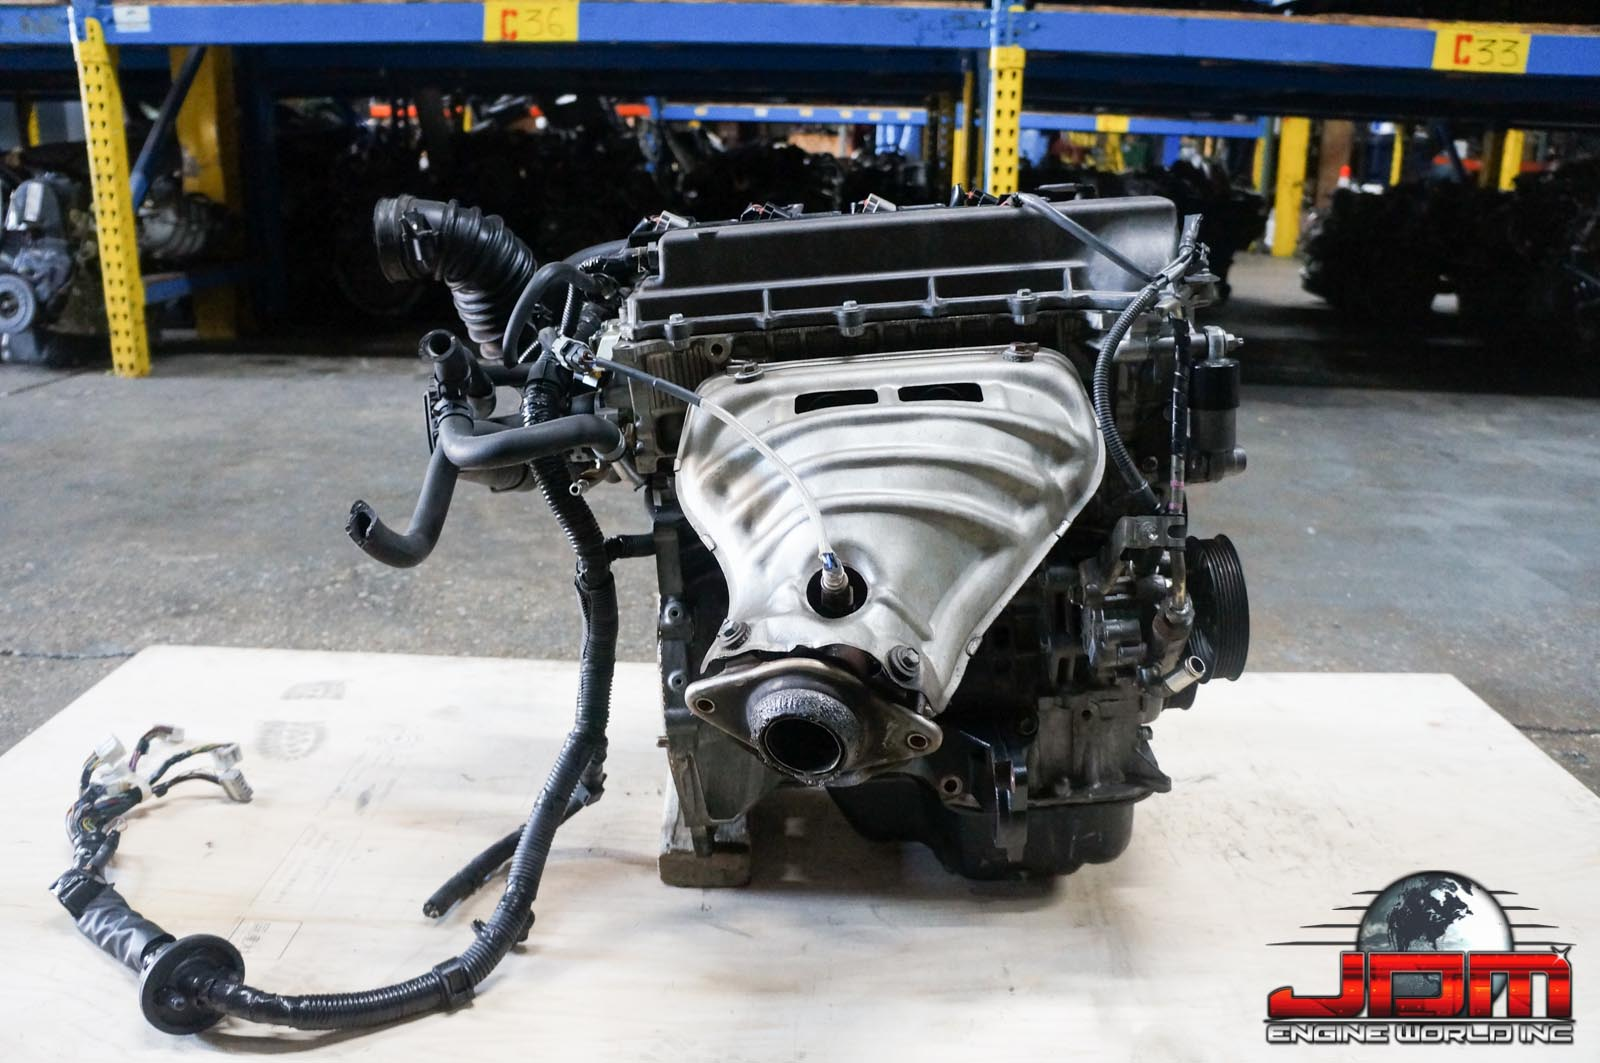 03 04 05 06 TOYOTA MATRIX XR 1ZZ-FE ENGINE 1.8L VVTi JDM 1ZZ